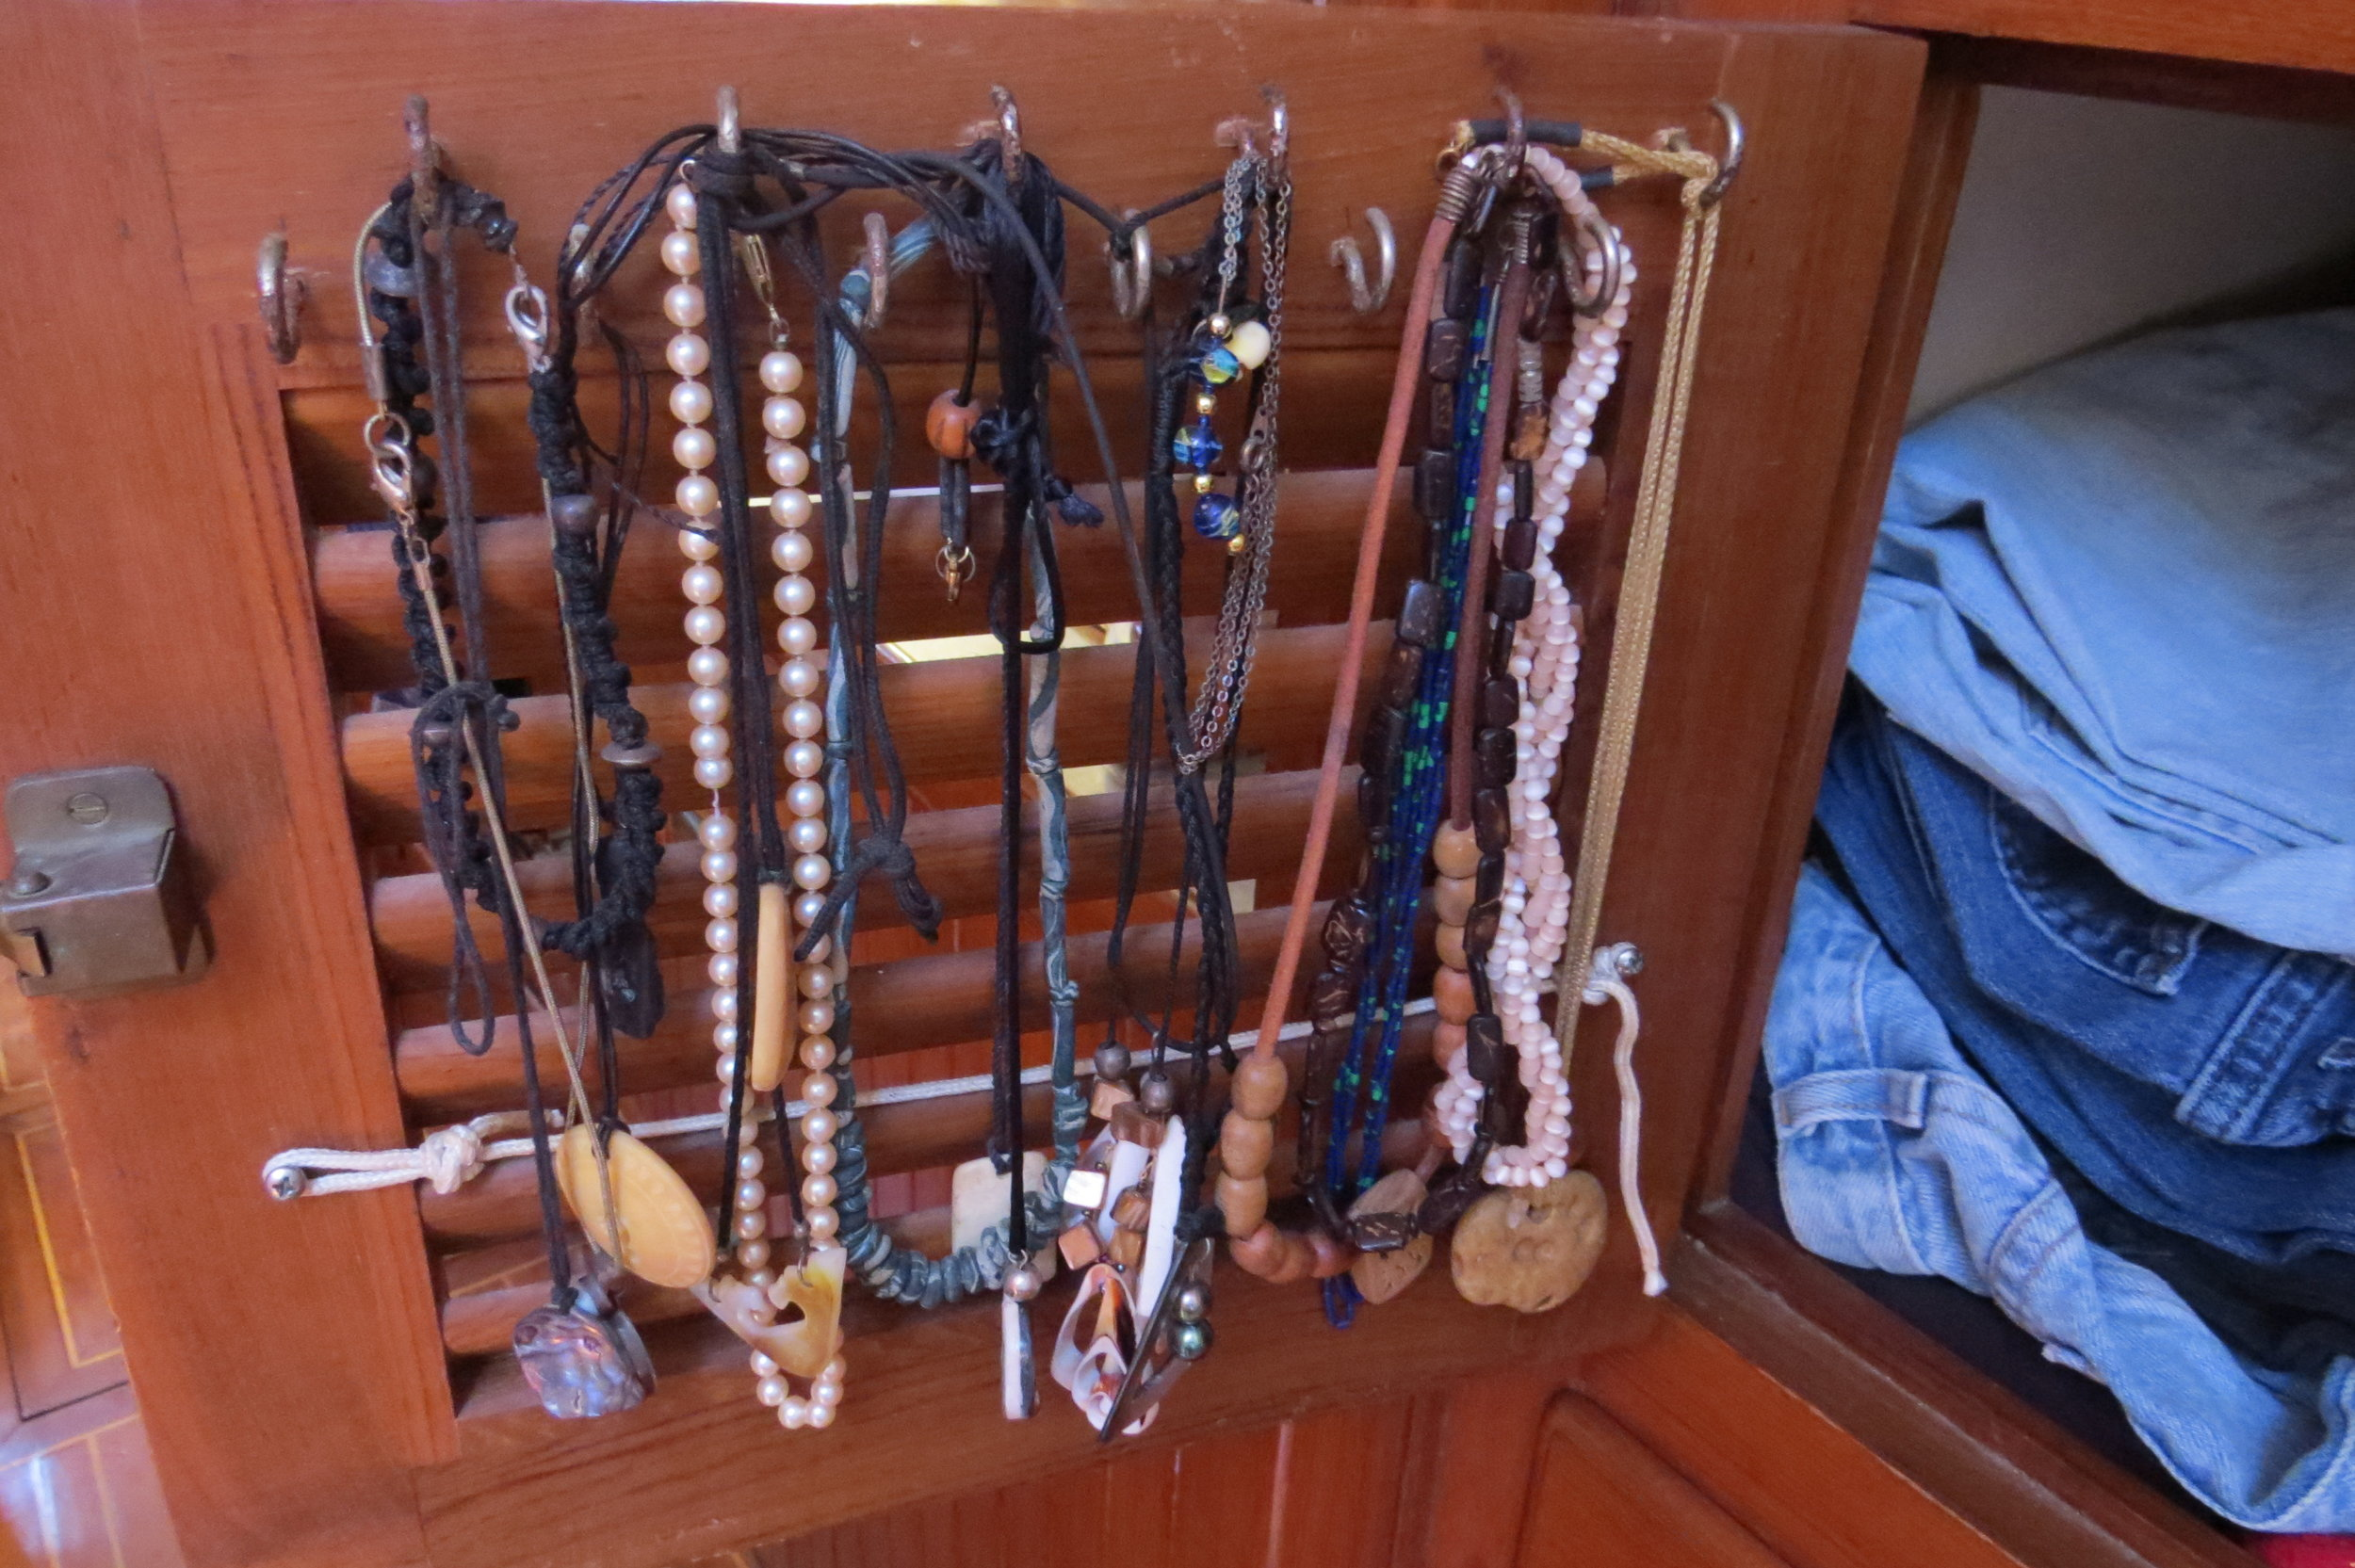 The inside of a locker door was the perfect place to hang necklaces and keep them untangled.